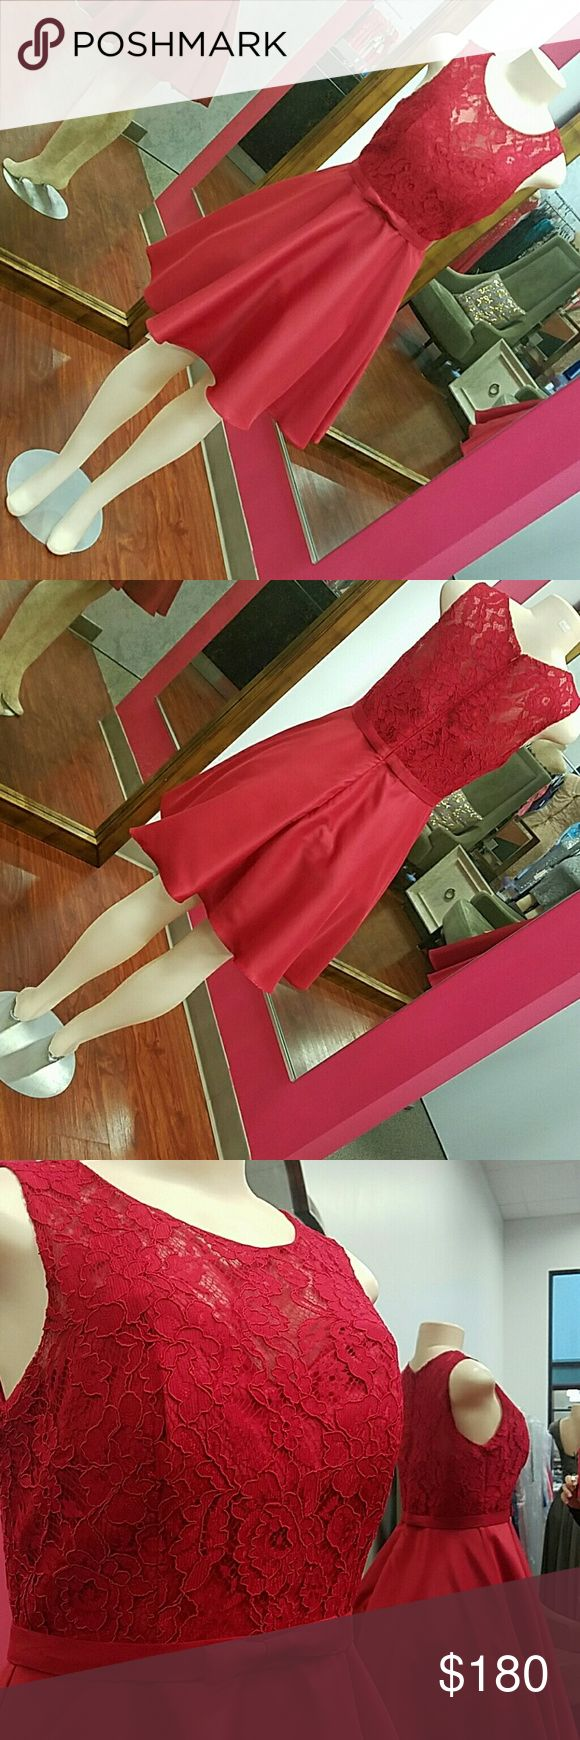 Red short dress homecoming formal Short dress has lace bust and has a waist belt with a cute bow.    Brand: Cindy  Also available in white, blush, red, champagne, royal blue and silver.  This dress is brand new from my boutique.  This dress is so cute and so elegant perfect for wedding guest, formal events, quinceanera, bridesmaids. Tags(for visibility): prom pageants military ball formal events homecoming wedding gala quinceañera graduations sherri hill scala windsor dave Johnny davids…